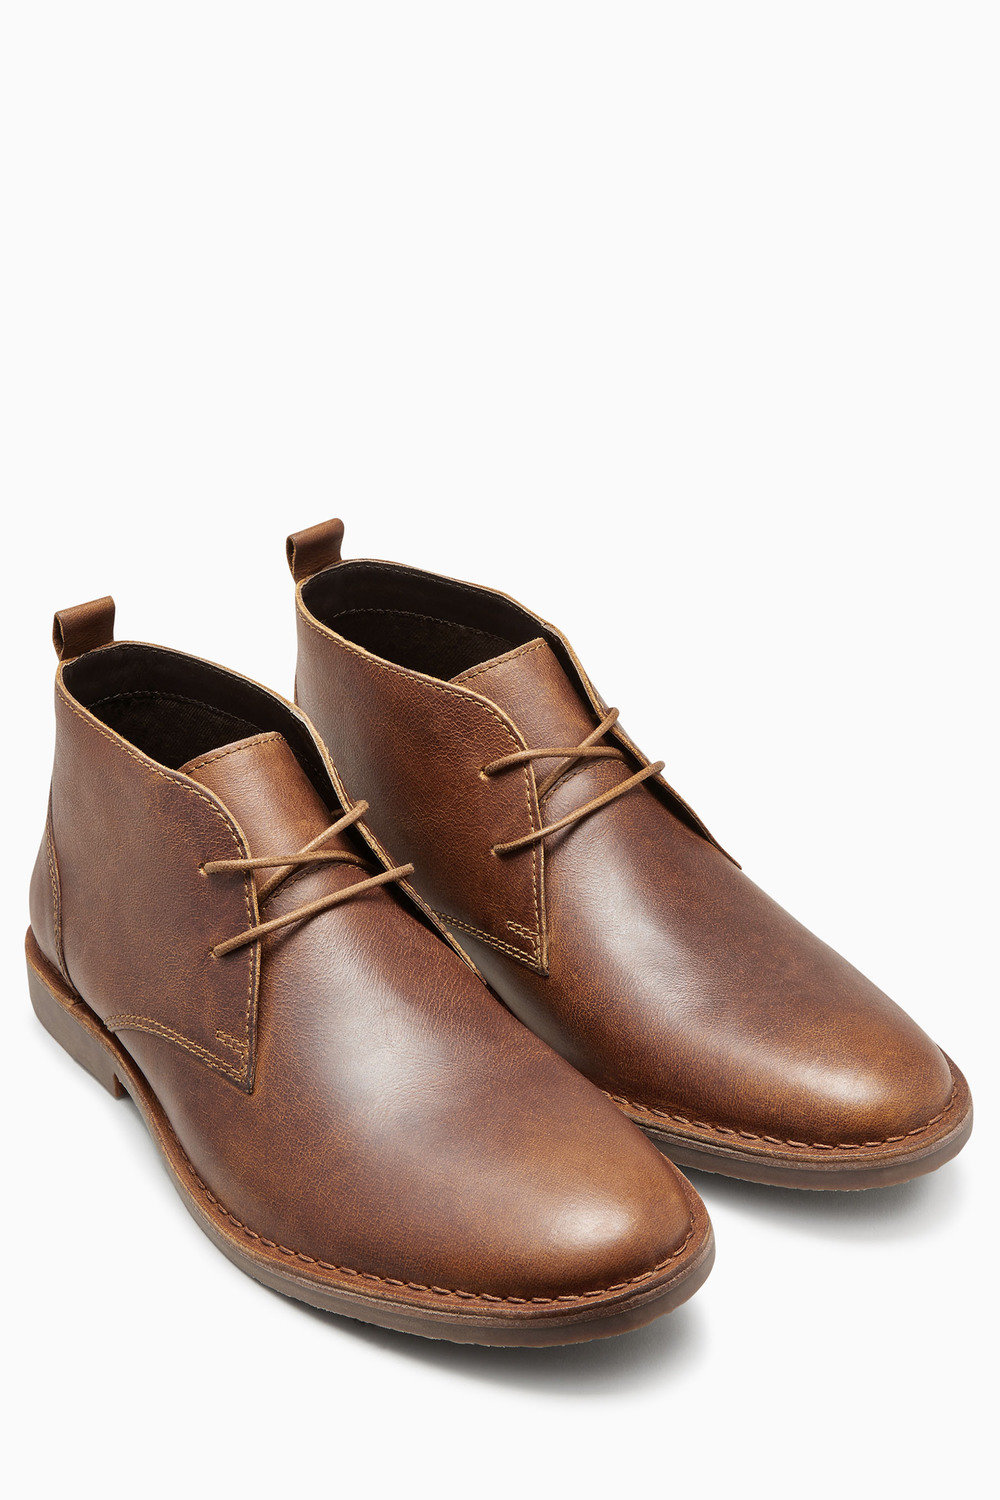 fa8a7ac5e7ec Next Leather Desert Boot Online